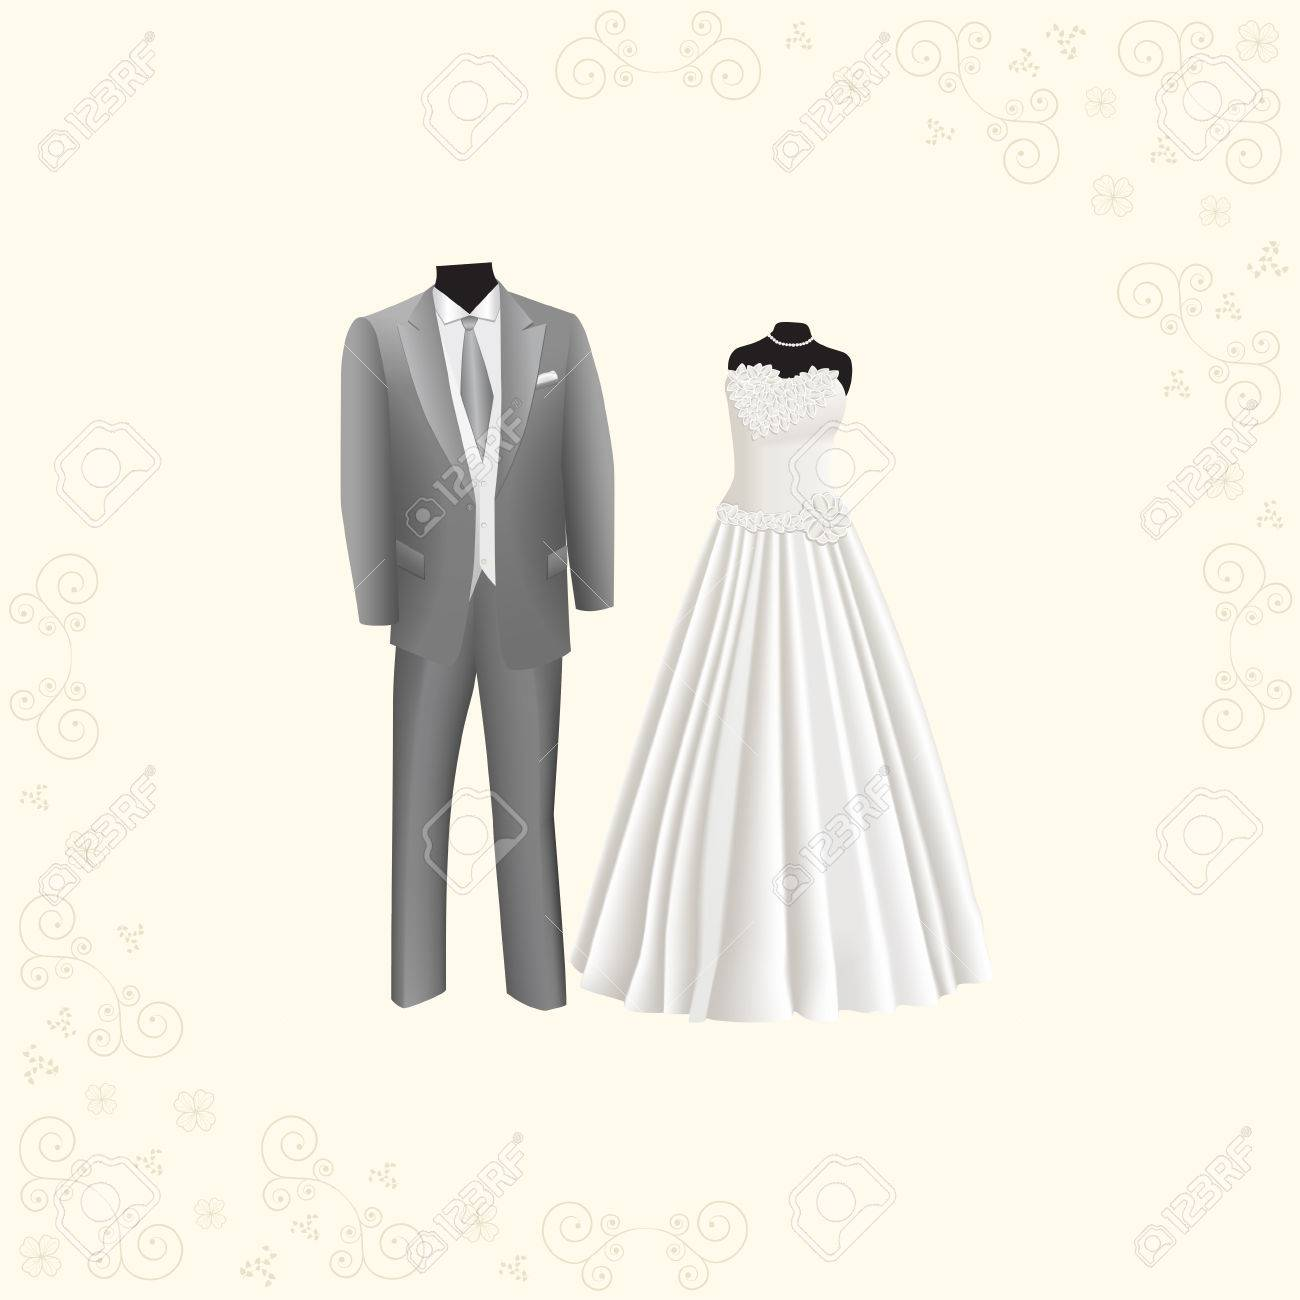 Wedding Dress And Gray Men's Suit On A Beige Background Royalty ...